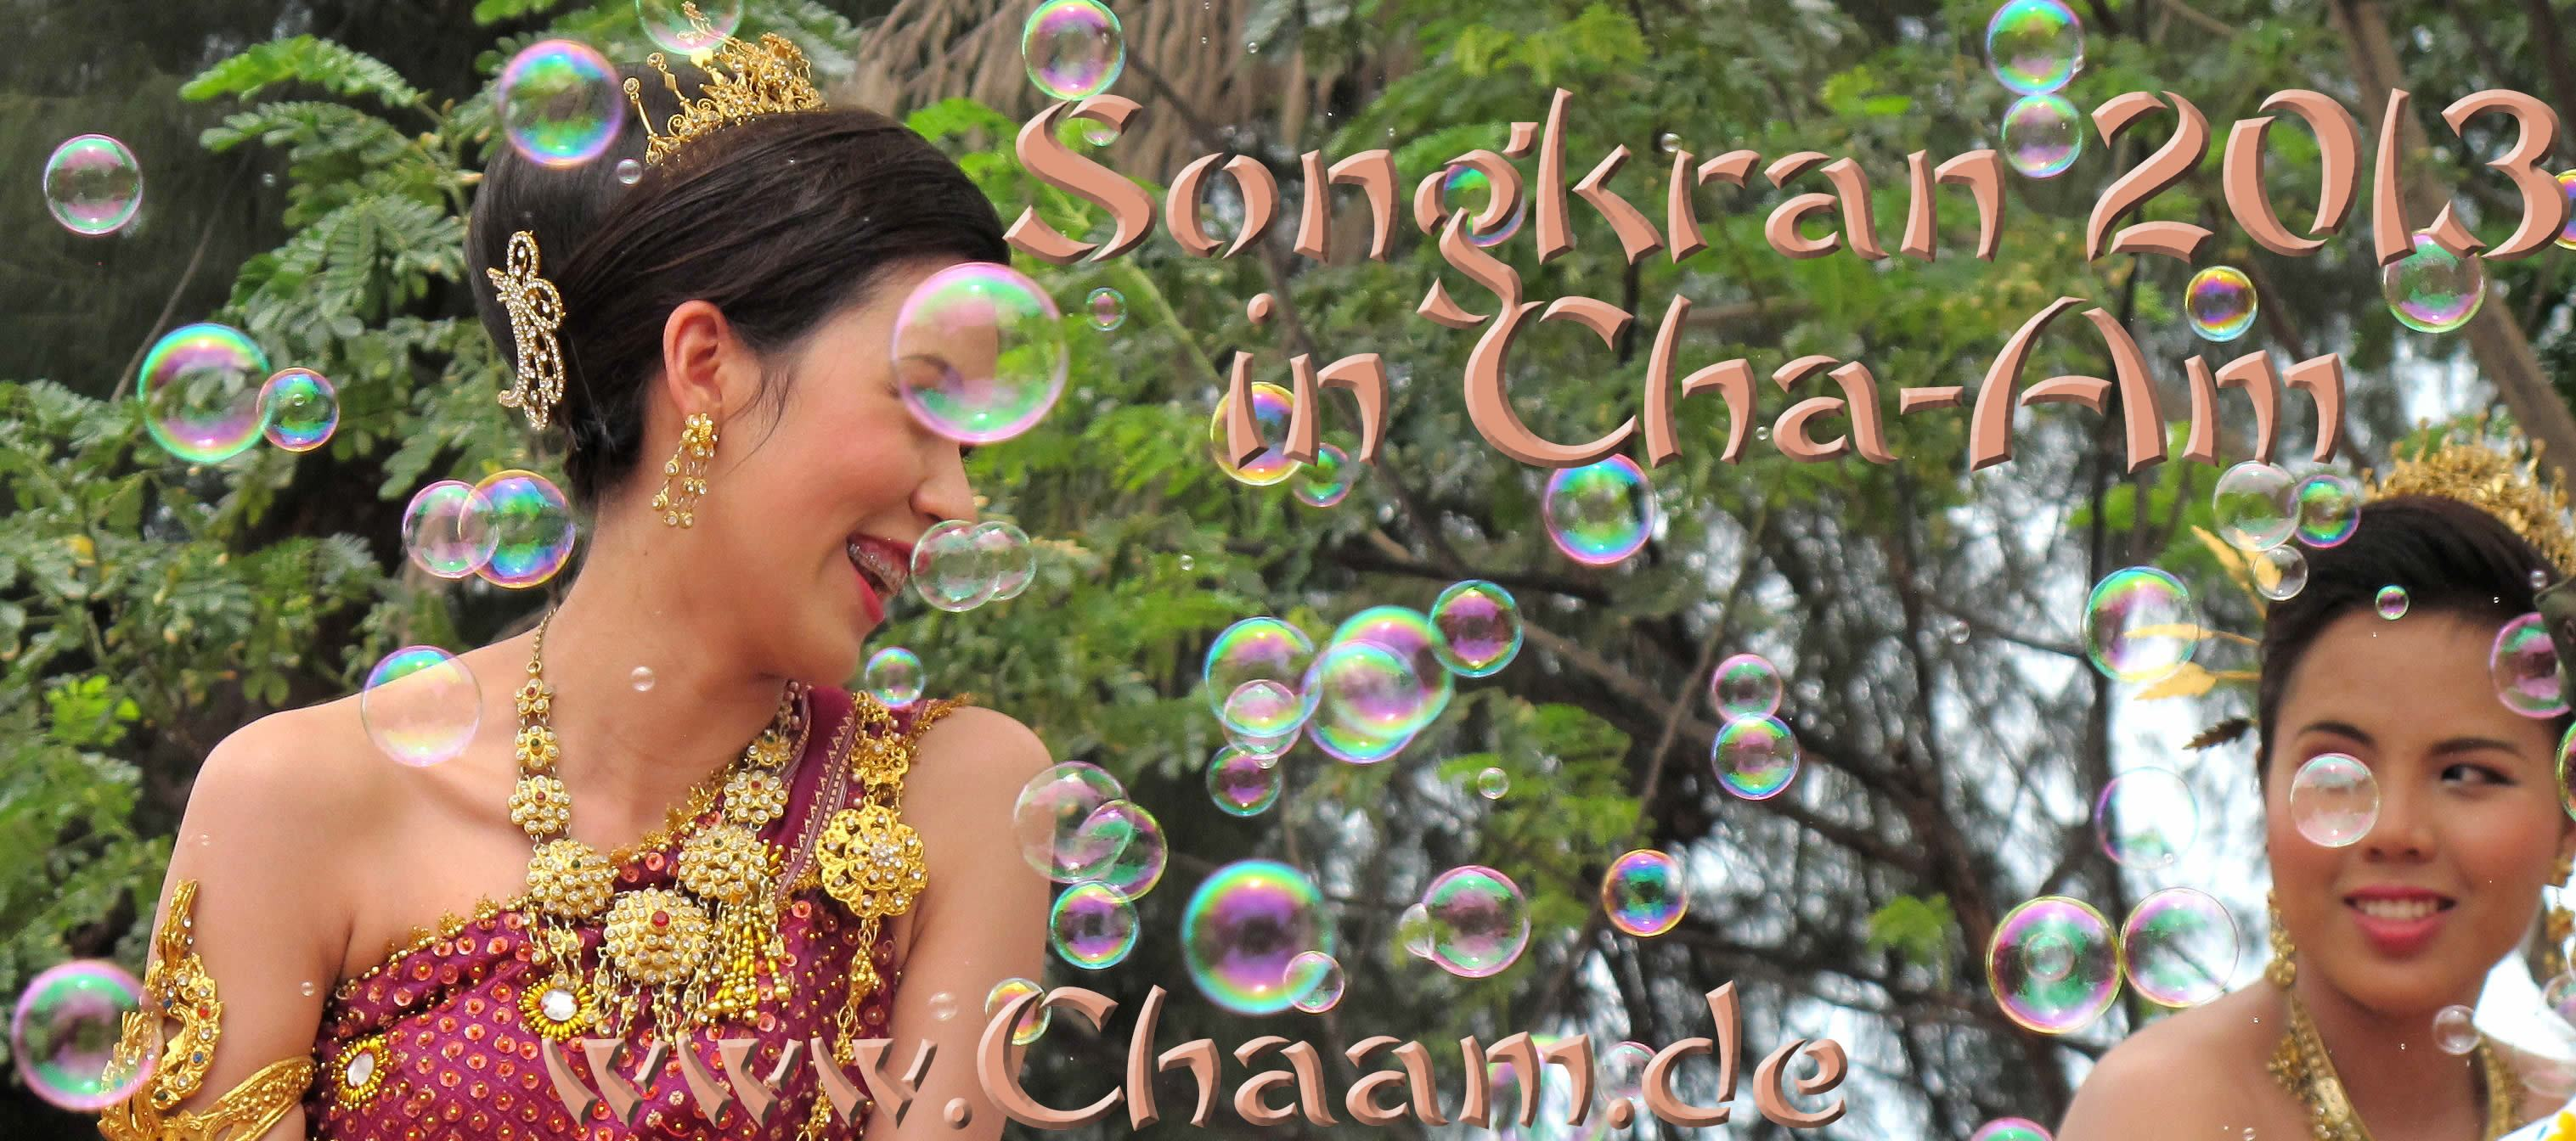 Cha-Am Songkran 2013